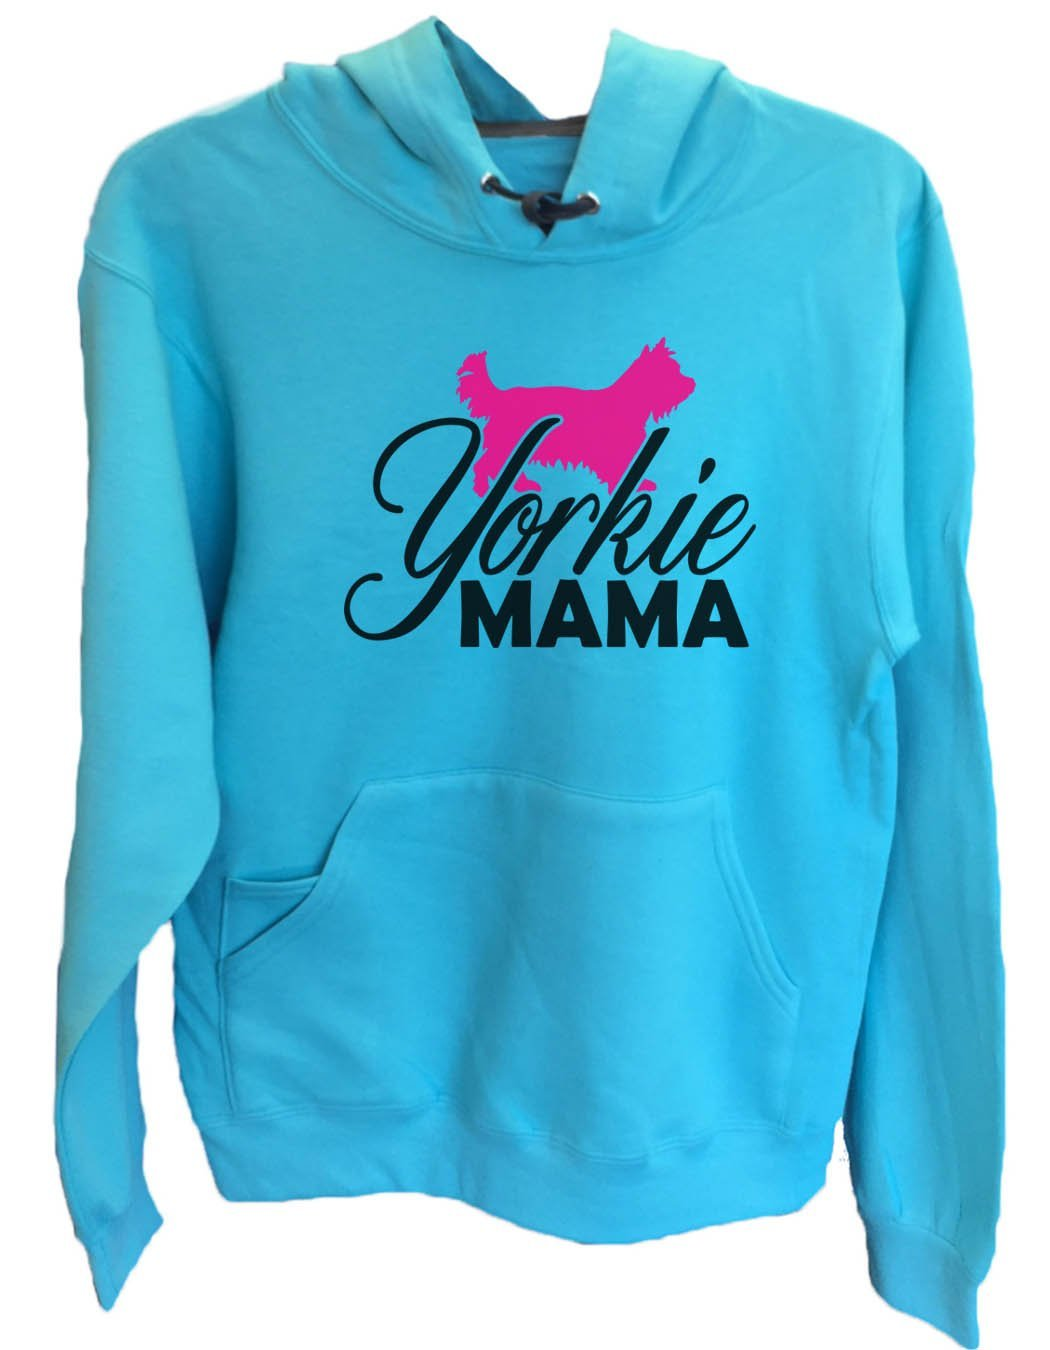 UNISEX HOODIE - Yorkie Mama - FUNNY MENS AND WOMENS HOODED SWEATSHIRTS - 2181 Funny Shirt Small / Turquoise